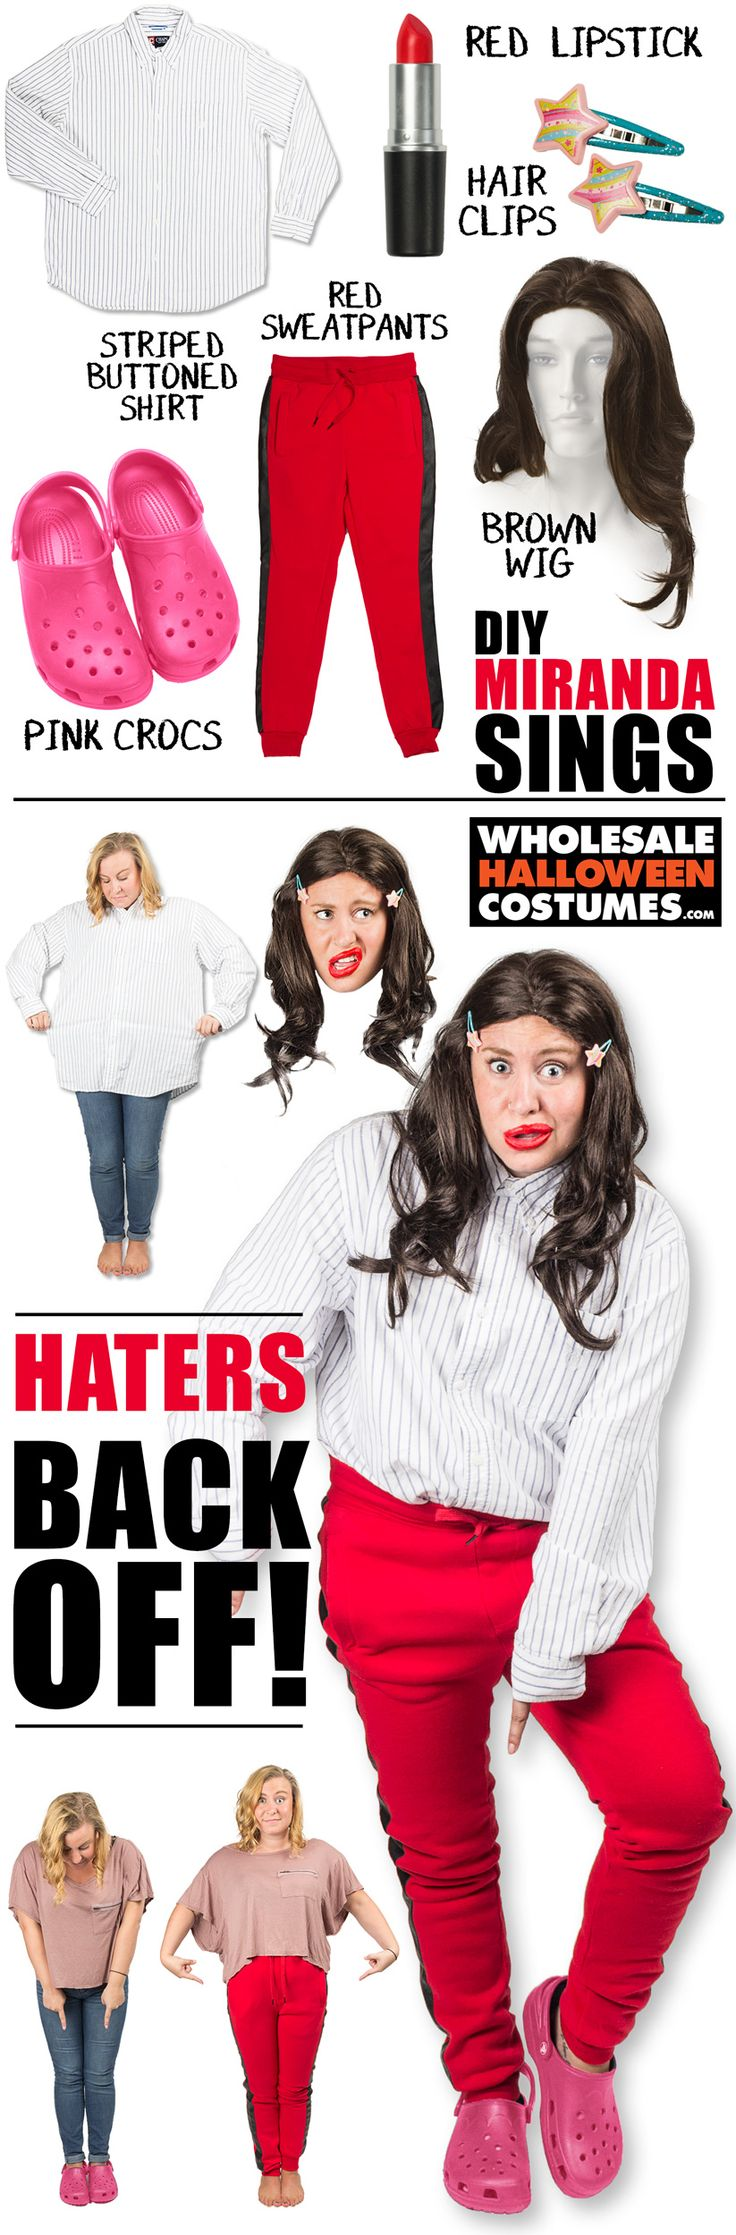 Become the four threat herself, Miranda Sings with this DIY costume.